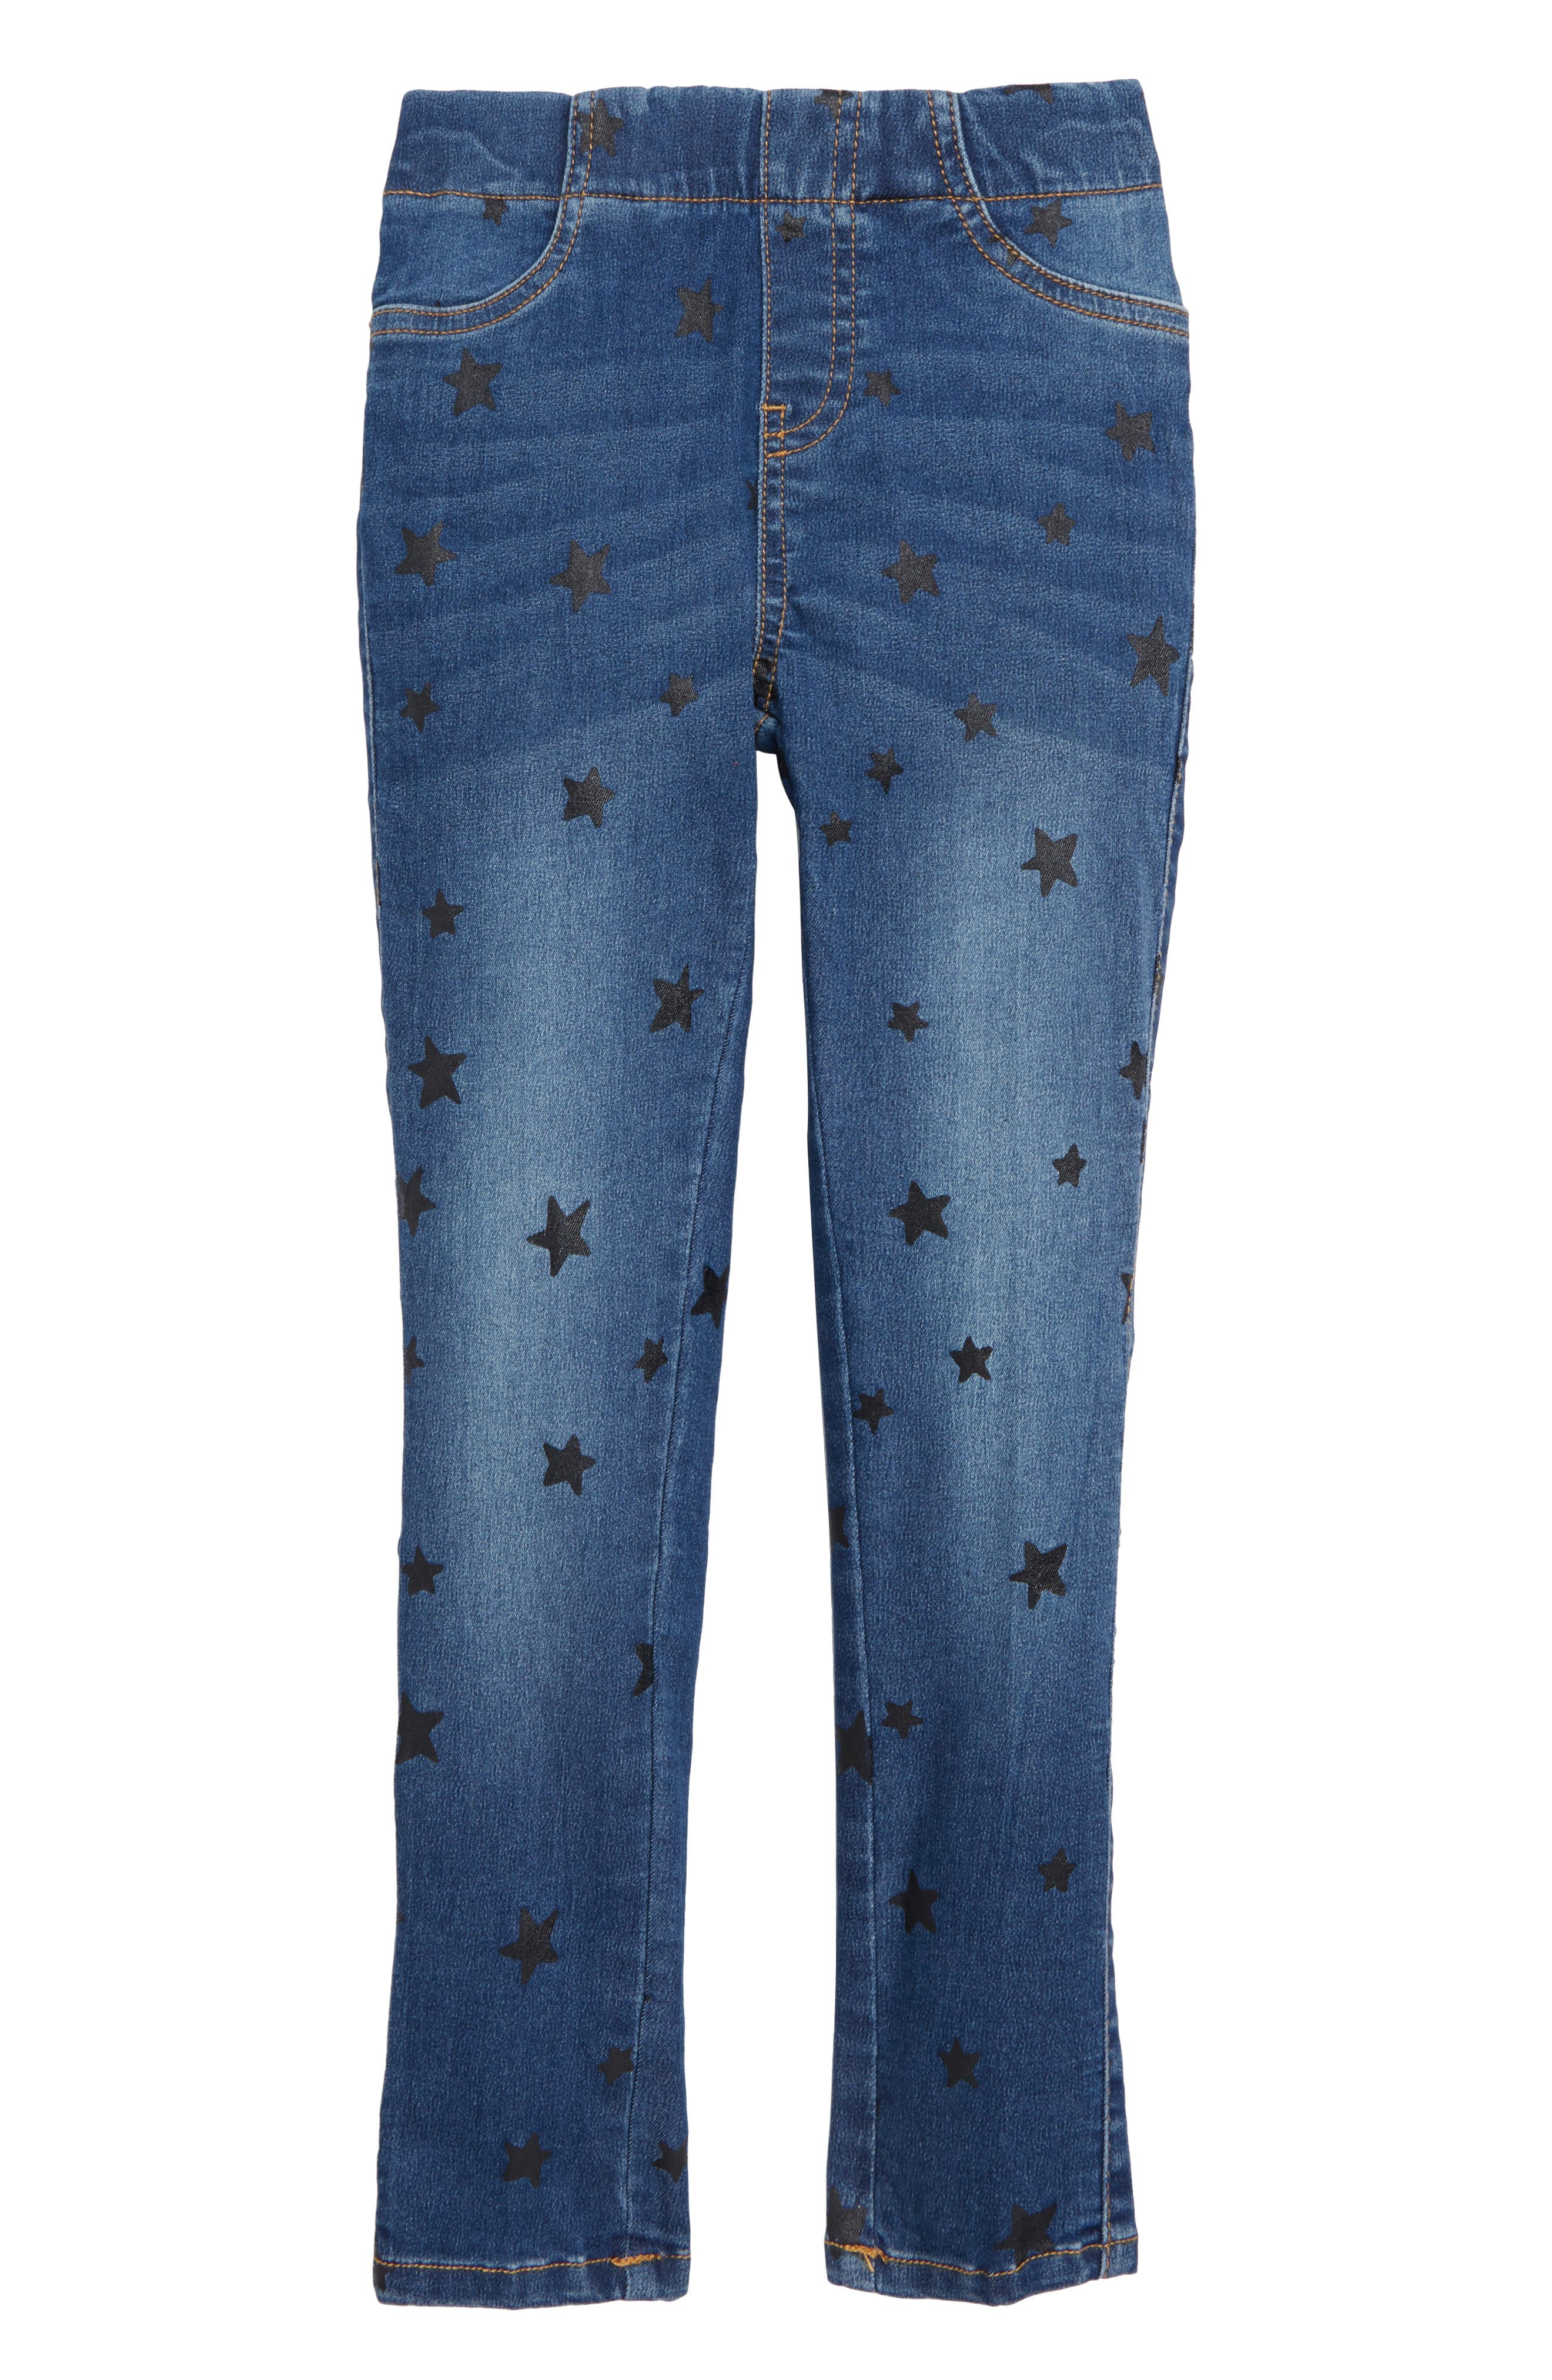 Print Jeggings,                         Main,                         color, INDIGO WASH STARS